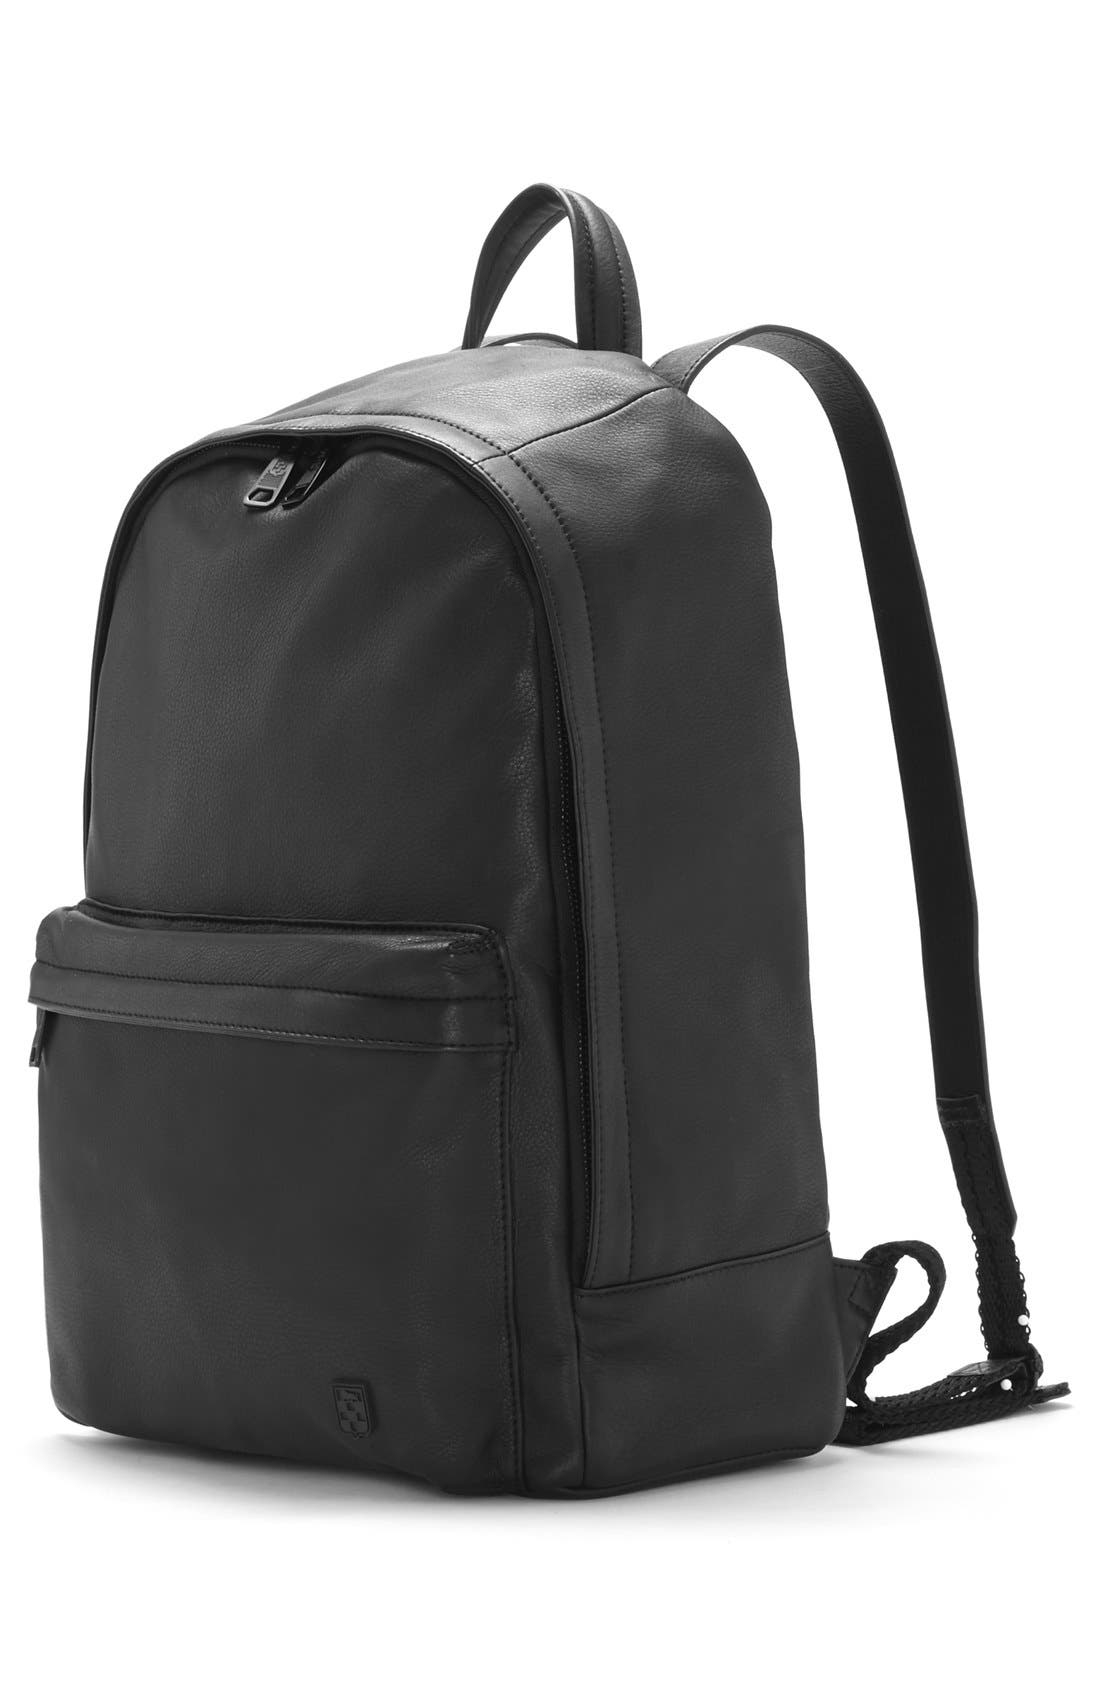 'Tolve' Leather Backpack,                             Alternate thumbnail 2, color,                             001